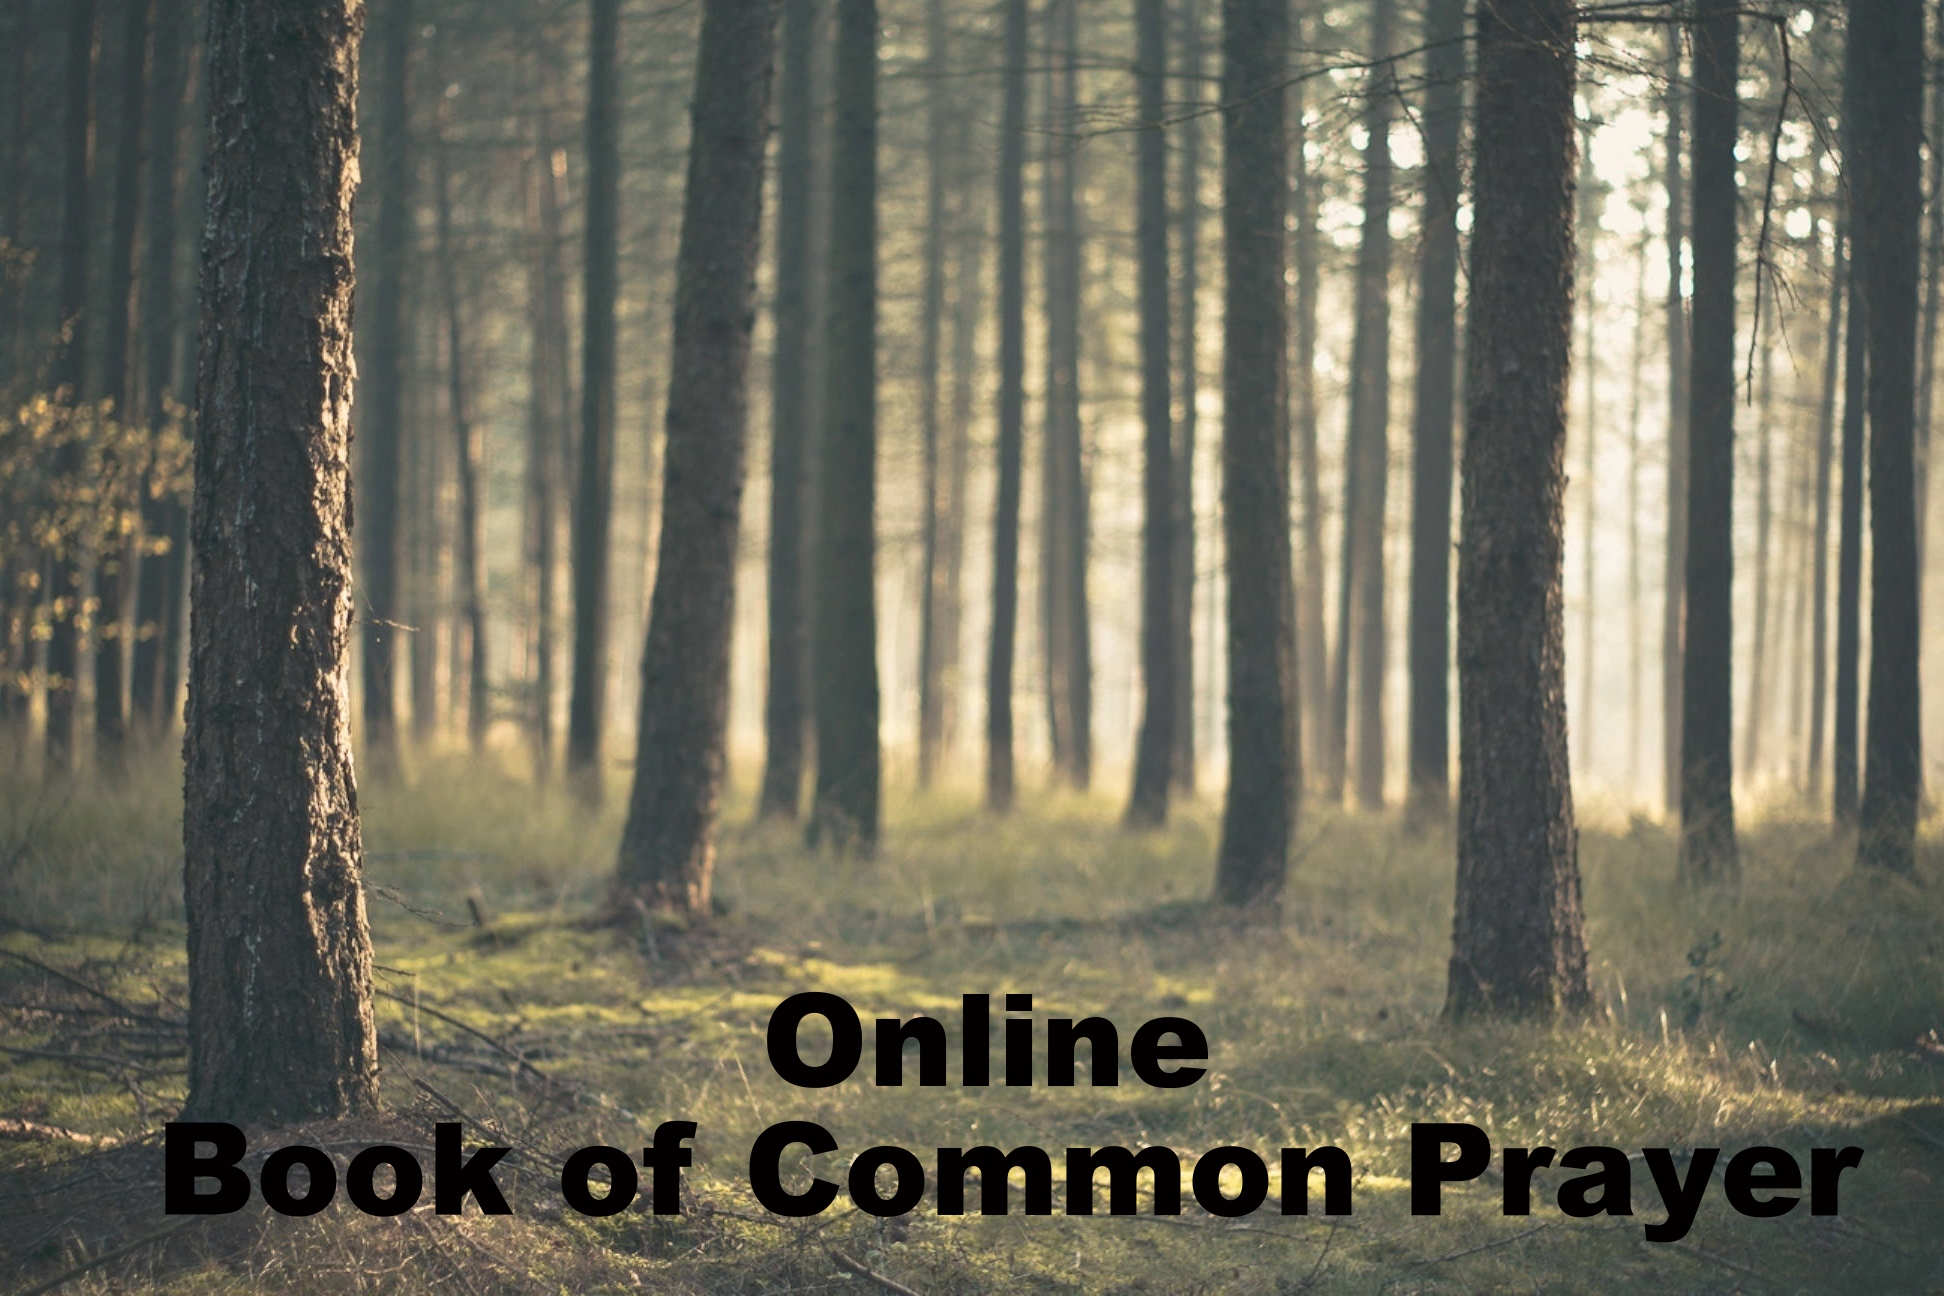 Book of Common Prayer Online  .    An online version of the 1979 Prayer Book that can be browsed with your web browser. To view the Catachism, which is a basic statement of Episcopal beliefs, click here .